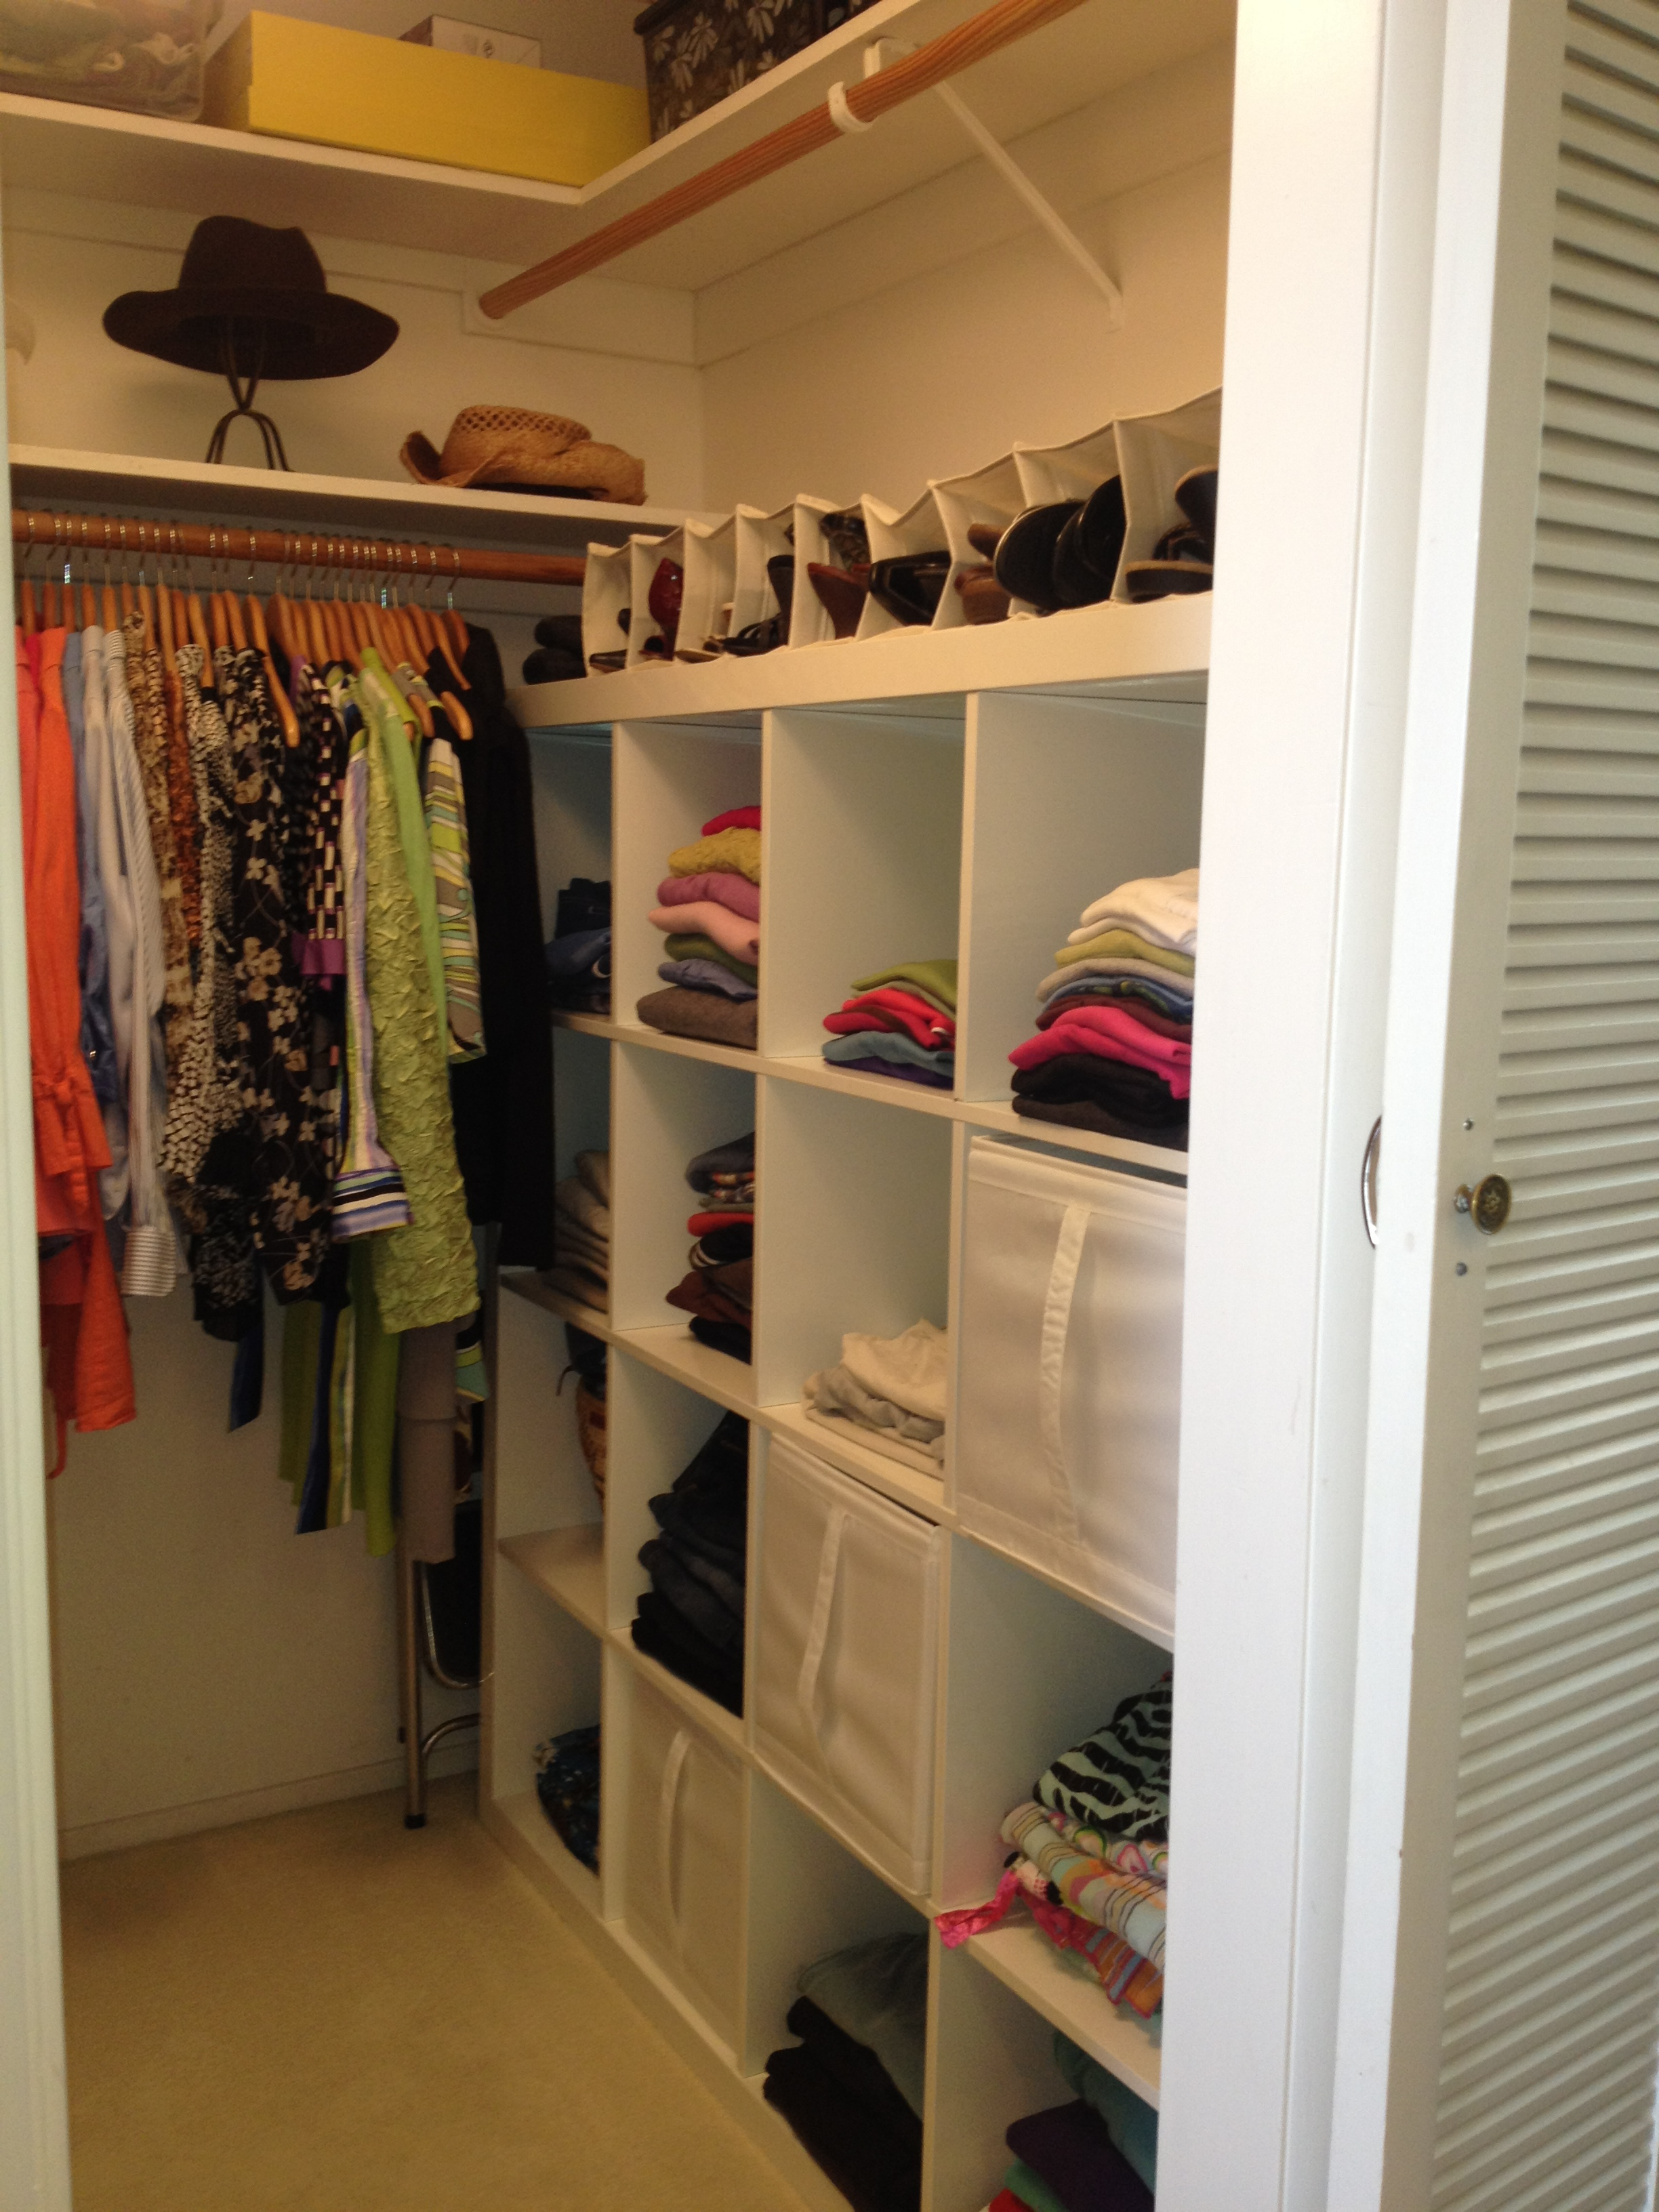 Closet Planner for Best Storage System Ideas: Closet Planner | California Closets Montreal | Closet Organizer Design Tool